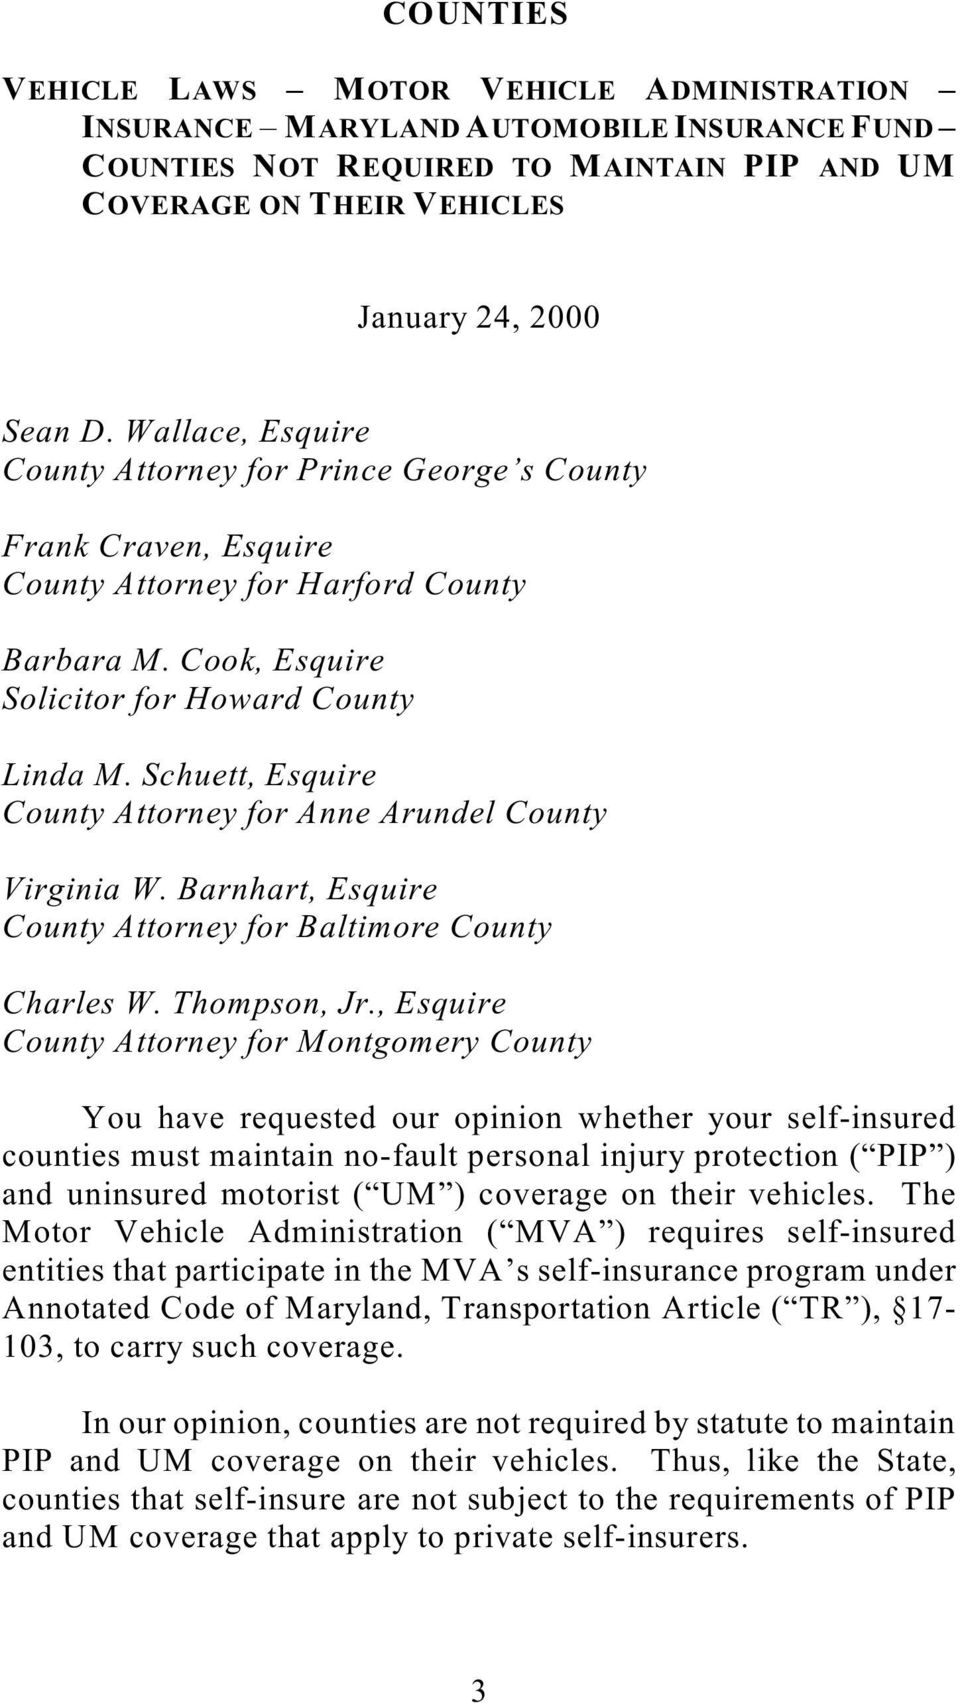 Schuett, Esquire County Attorney for Anne Arundel County Virginia W. Barnhart, Esquire County Attorney for Baltimore County Charles W. Thompson, Jr.